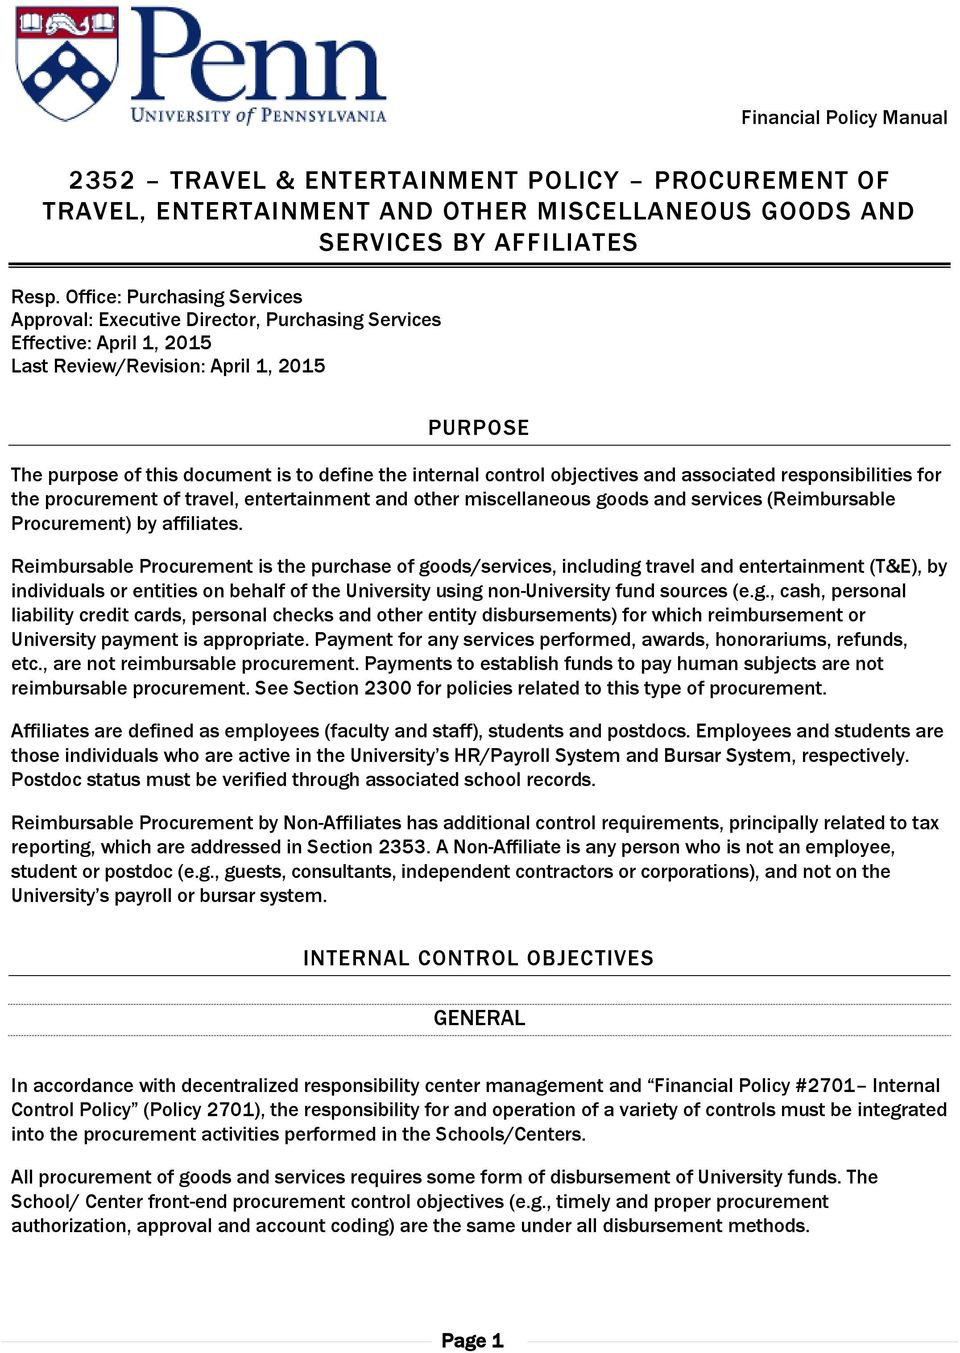 internal control objectives and associated responsibilities for the procurement of travel, entertainment and other miscellaneous goods and services (Reimbursable Procurement) by affiliates.